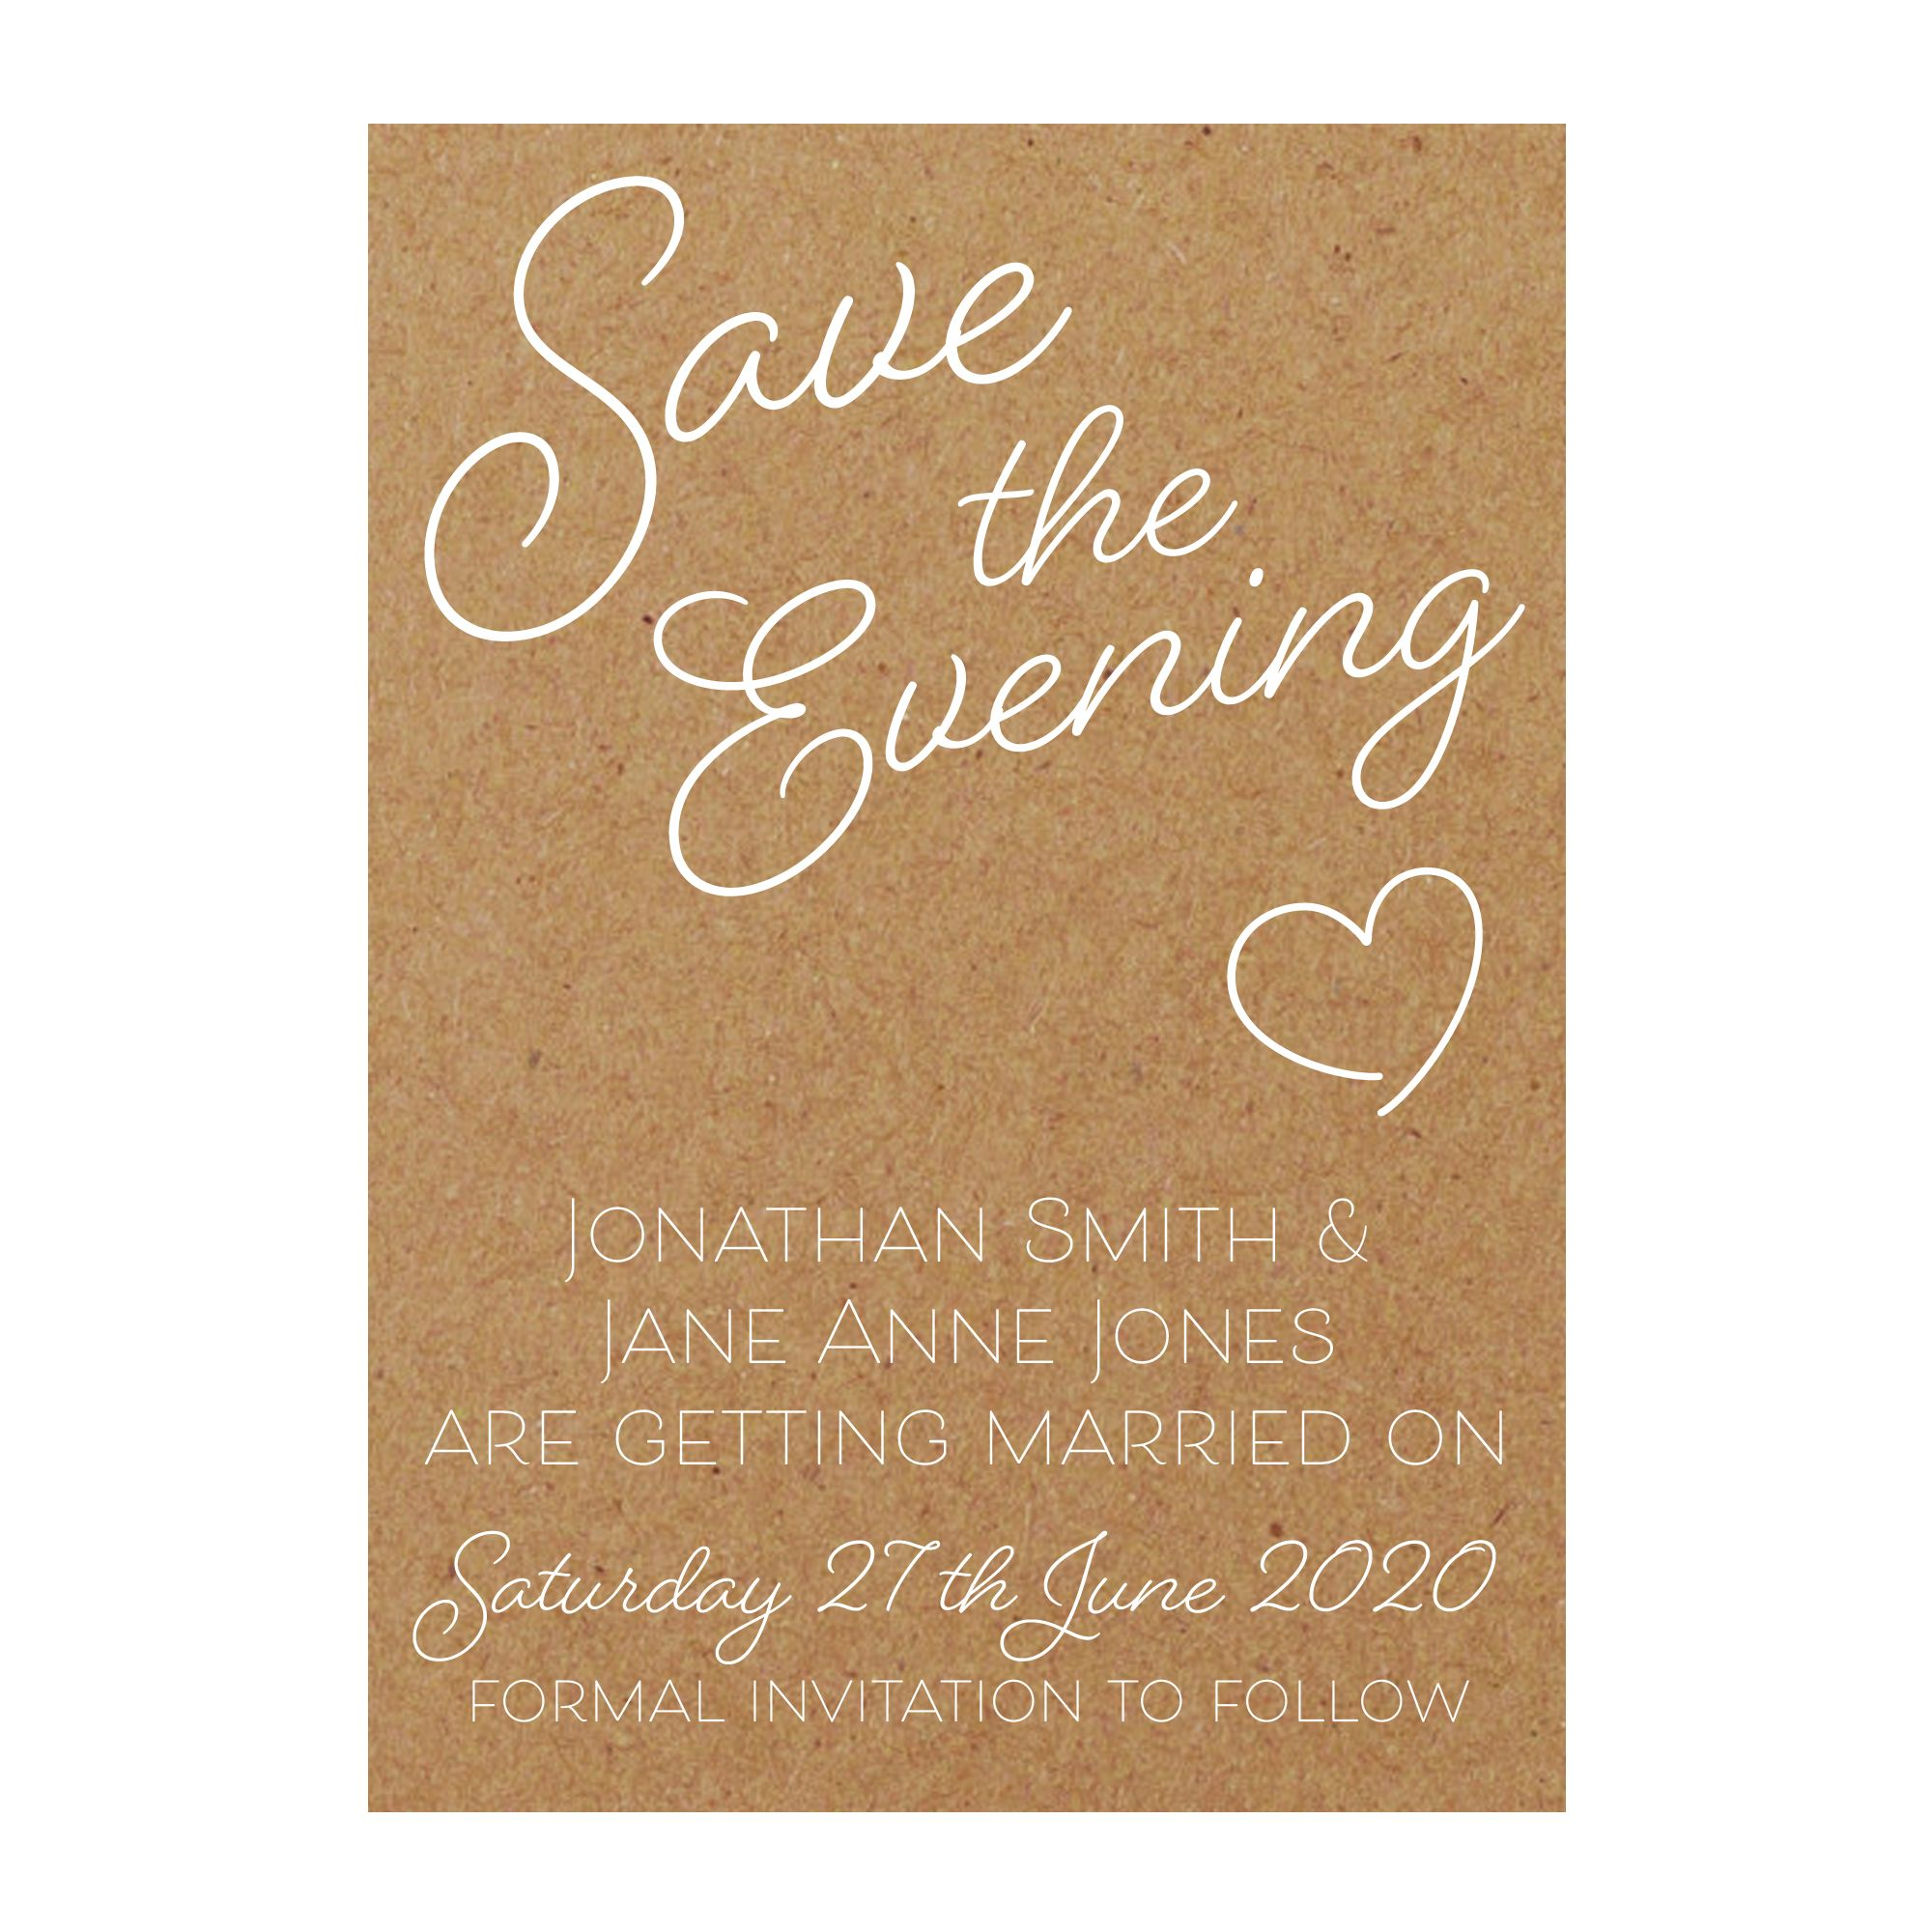 Recycled Brown Kraft with White Ink Cute Heart Save the Evening Cards